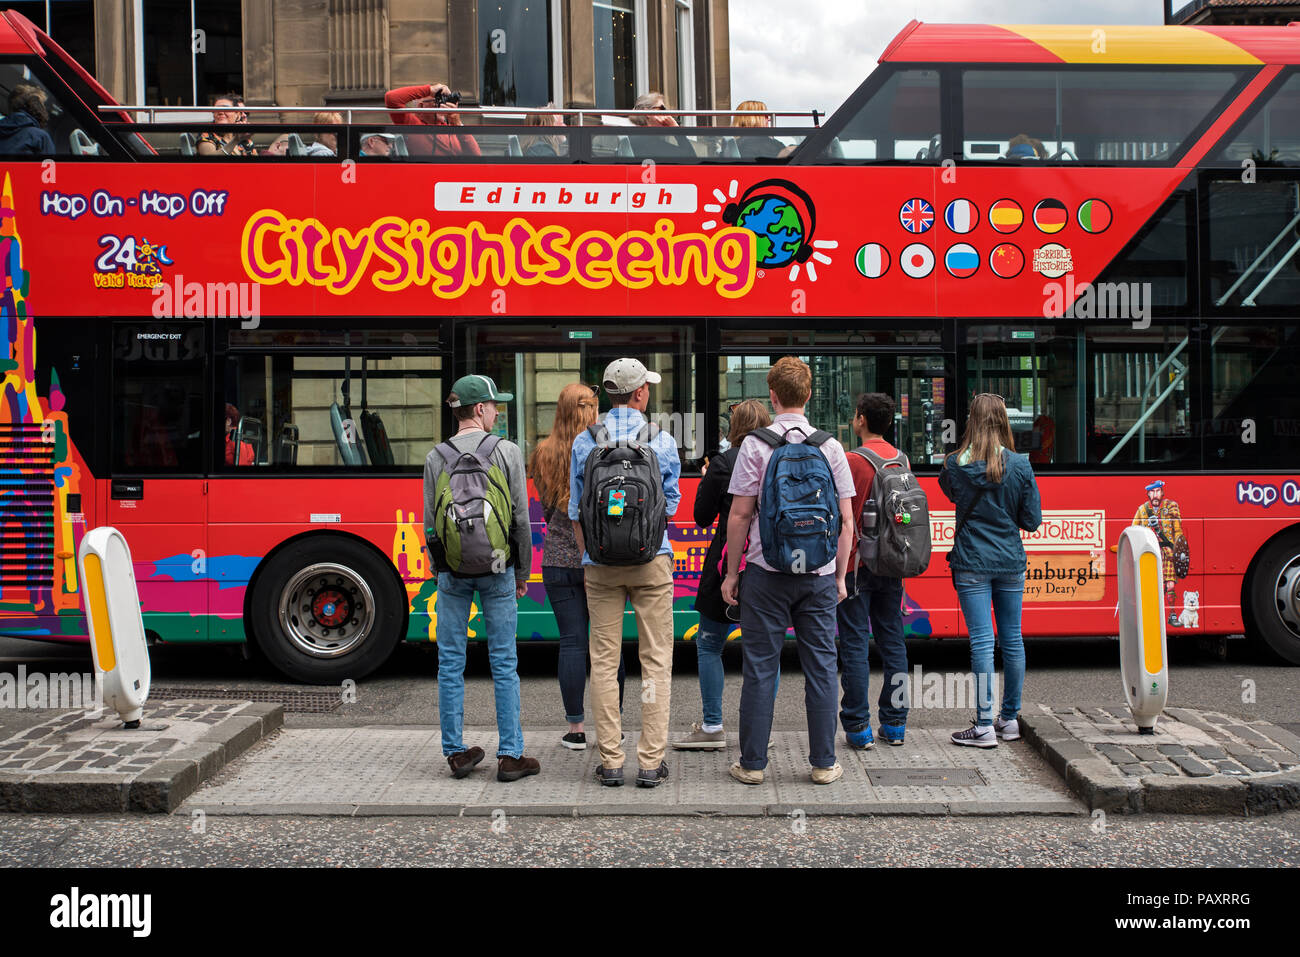 Edinburgh sightseeing bus passing a group of tourists waiting to cross the road in Edinburgh - Stock Image